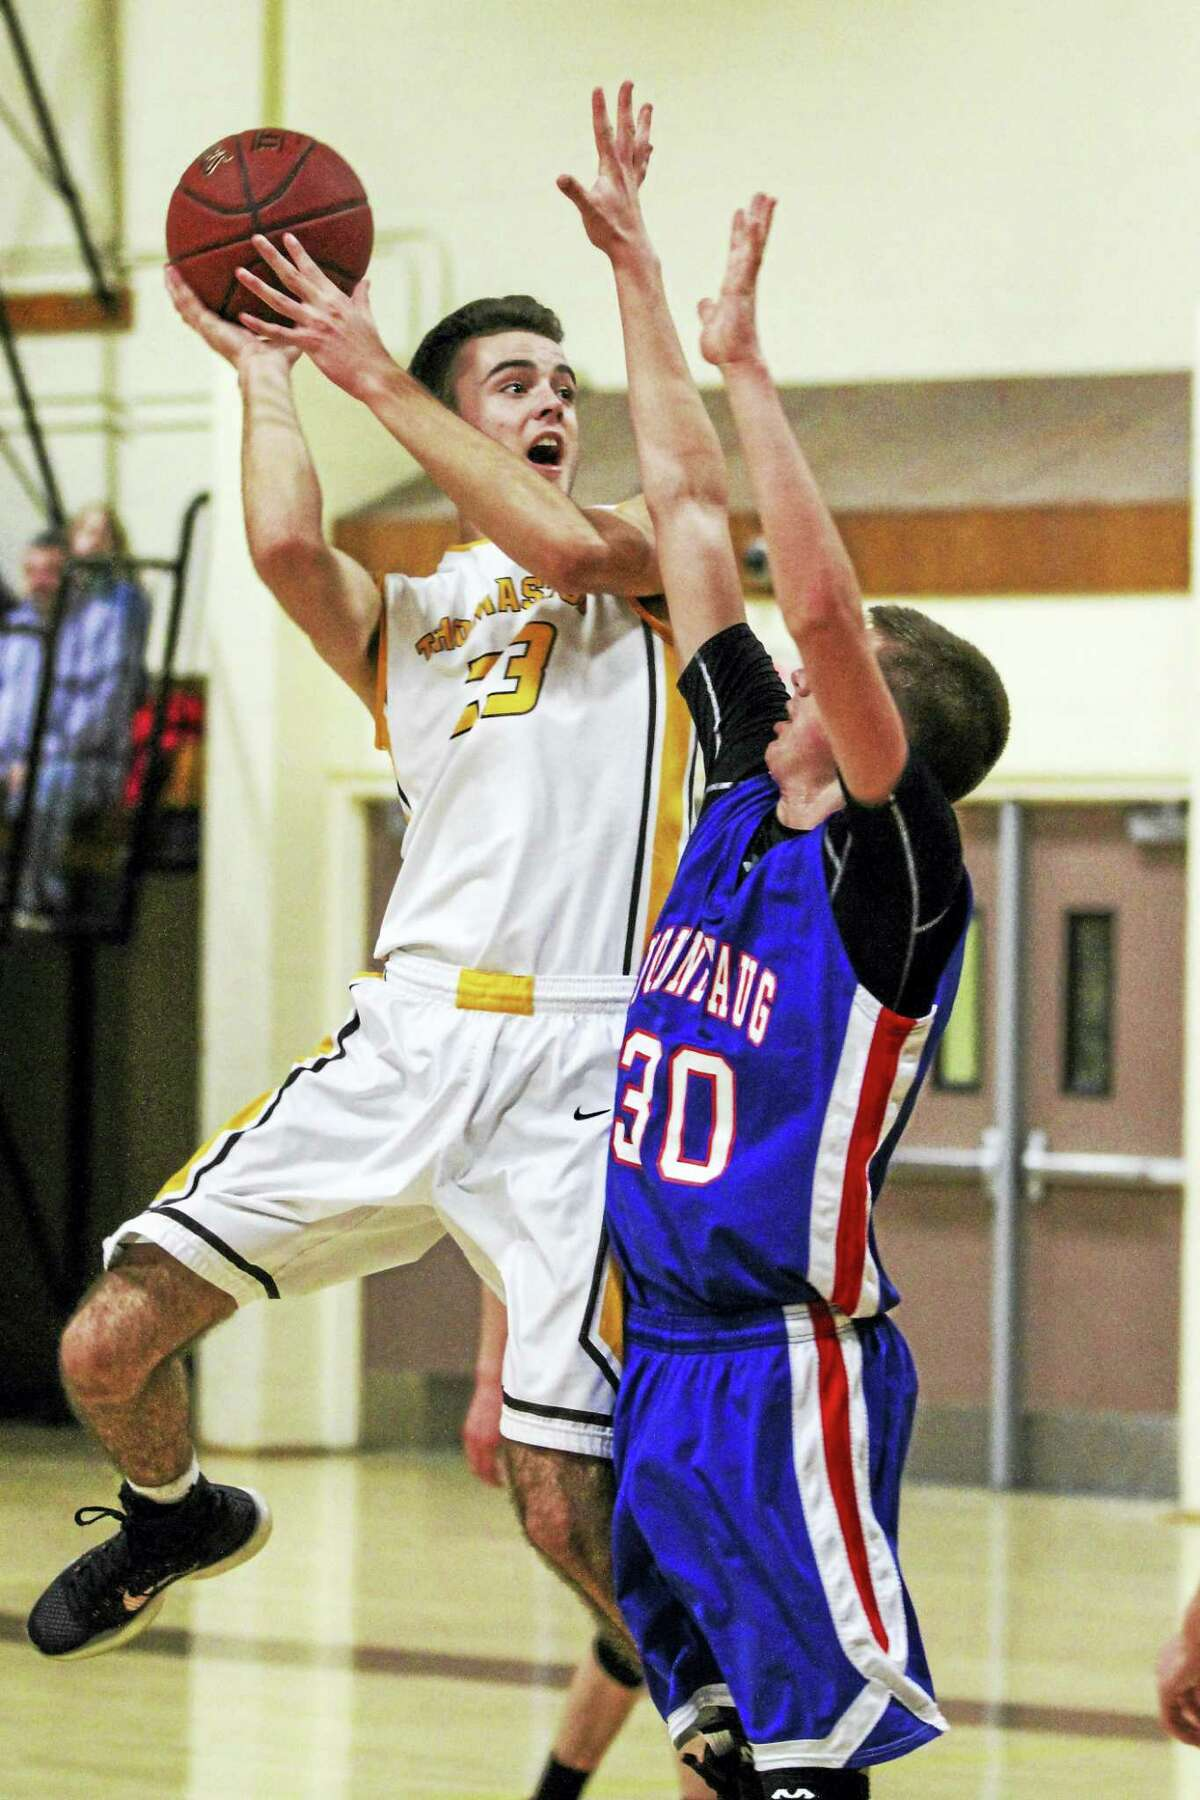 Thomaston center Noah Daigle combines height with athleticism to make him one of the best players in the Berkshire League.